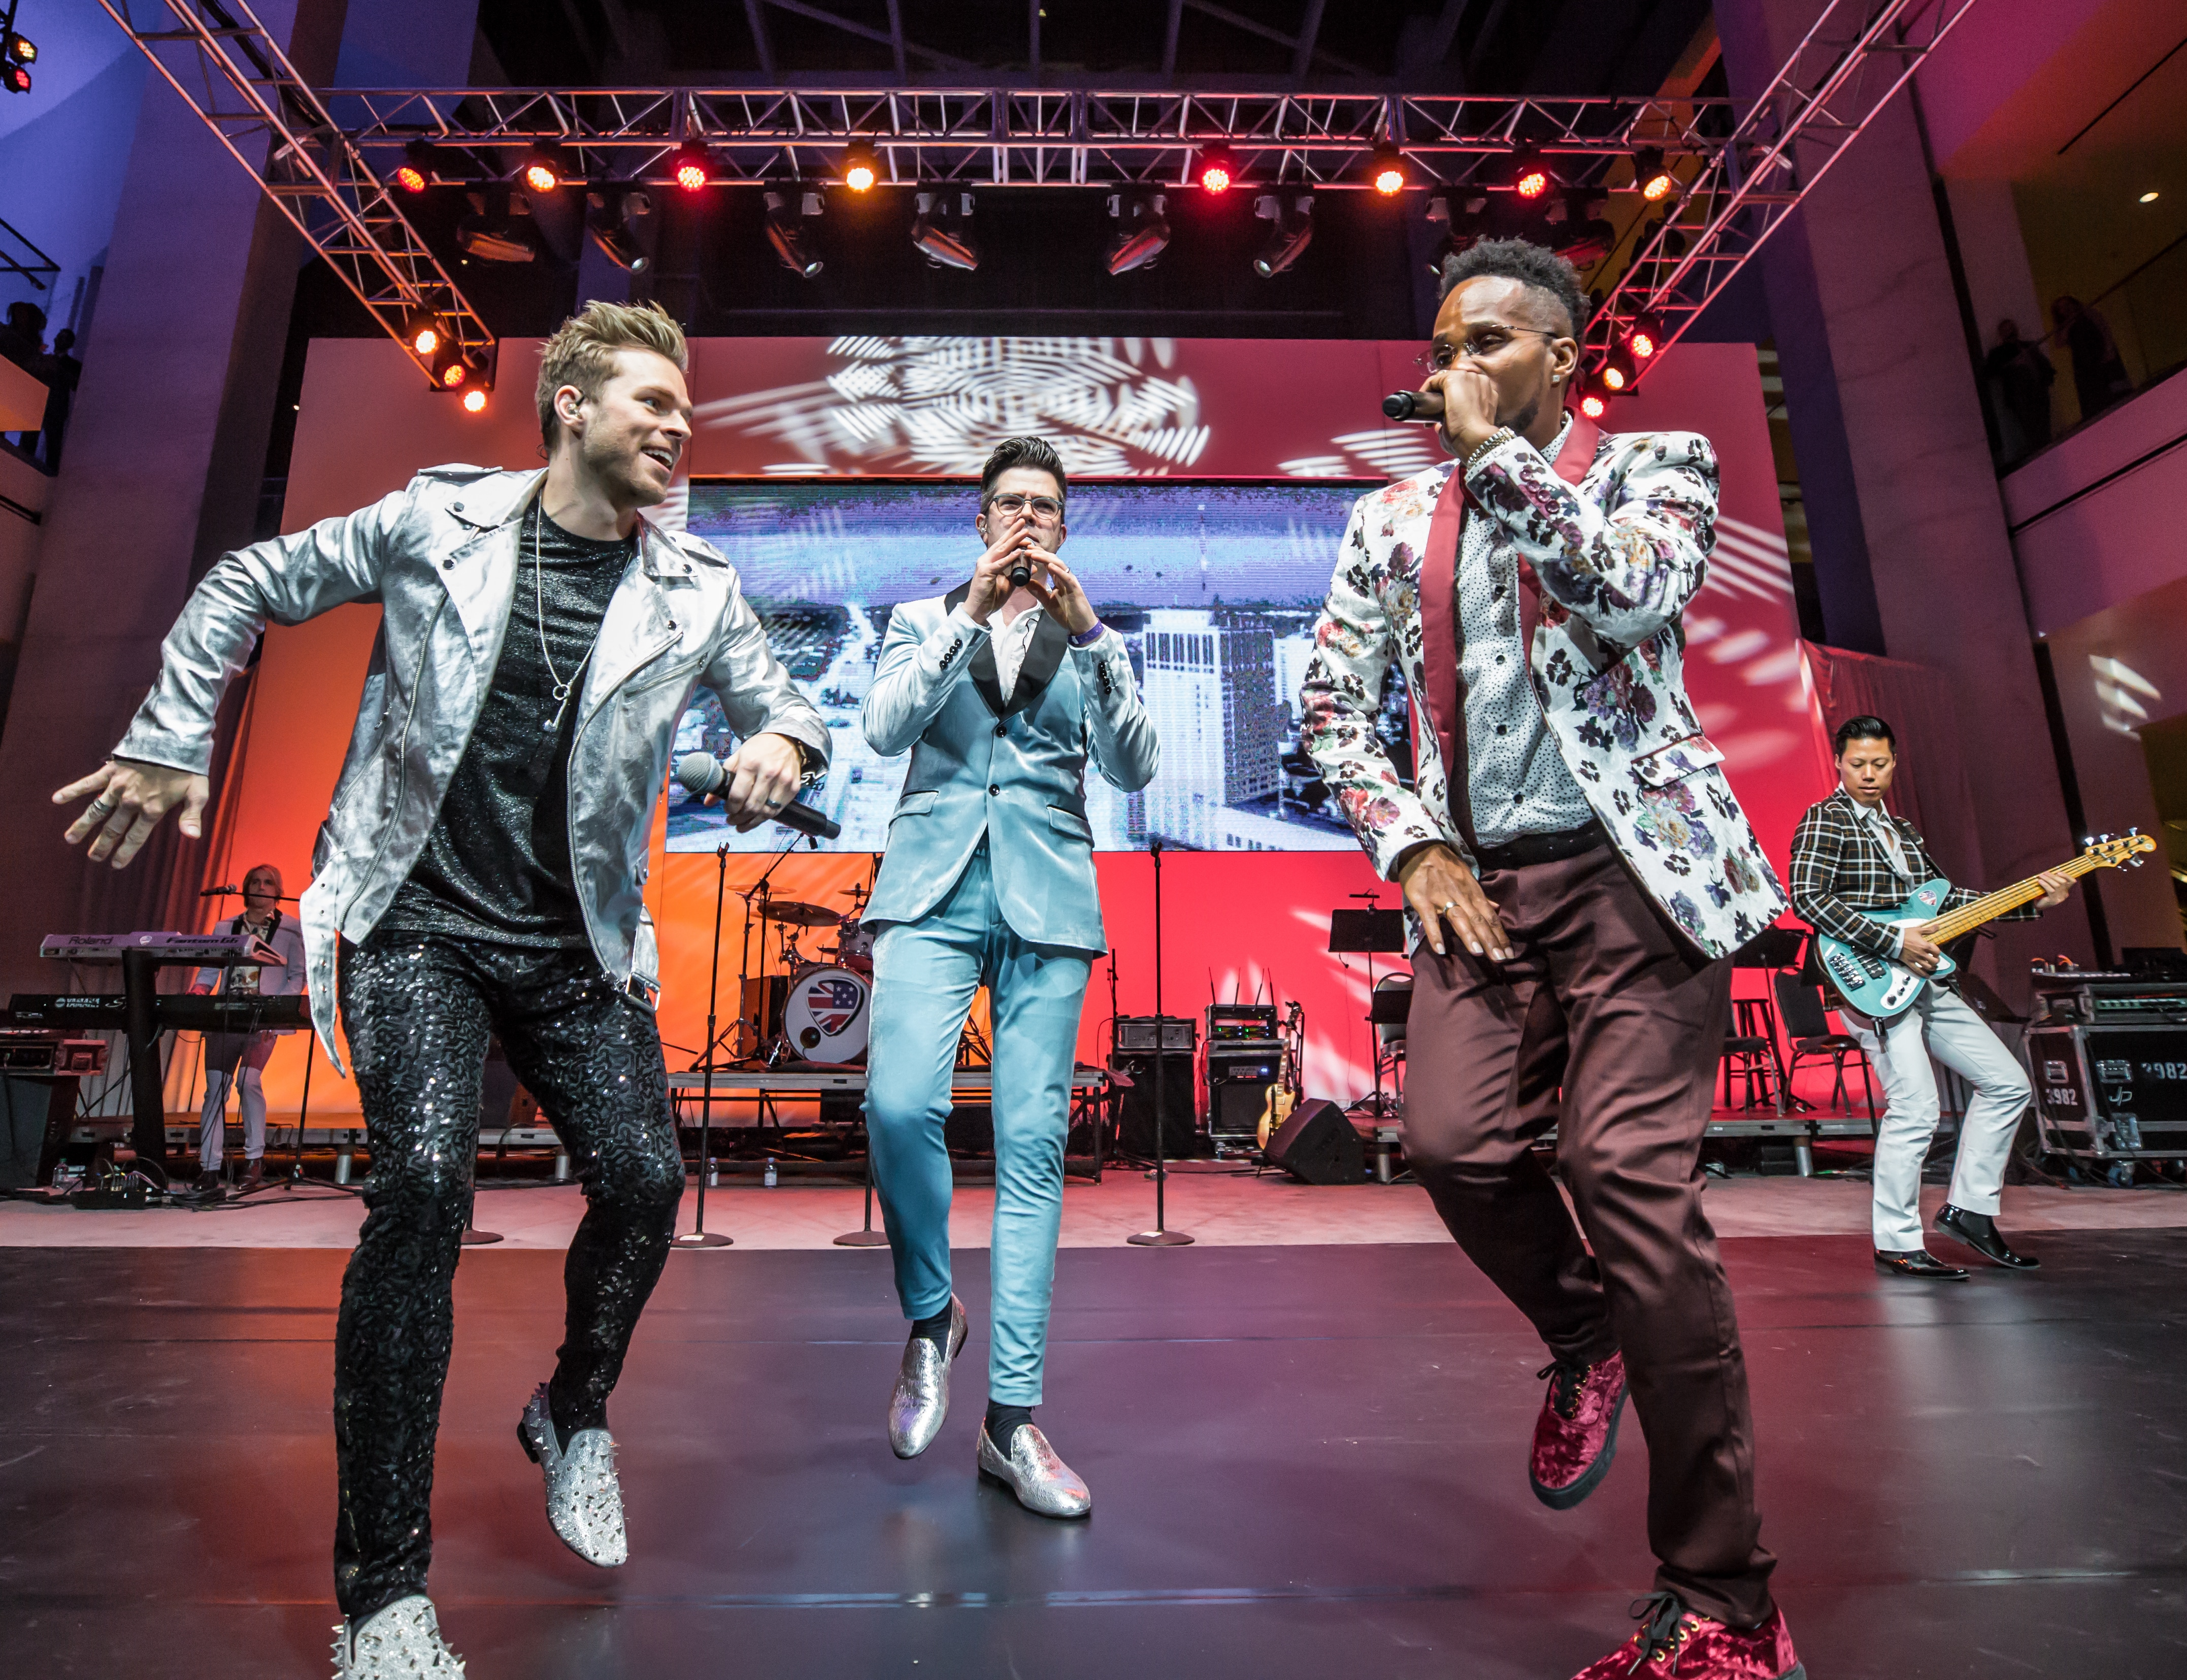 Your Generation in Concert at the 2018 Detroit's Auto Show Charity Preview Gala at Cobo Hall in Detroit, MI on January 19th 2018 photo by Marc Nader